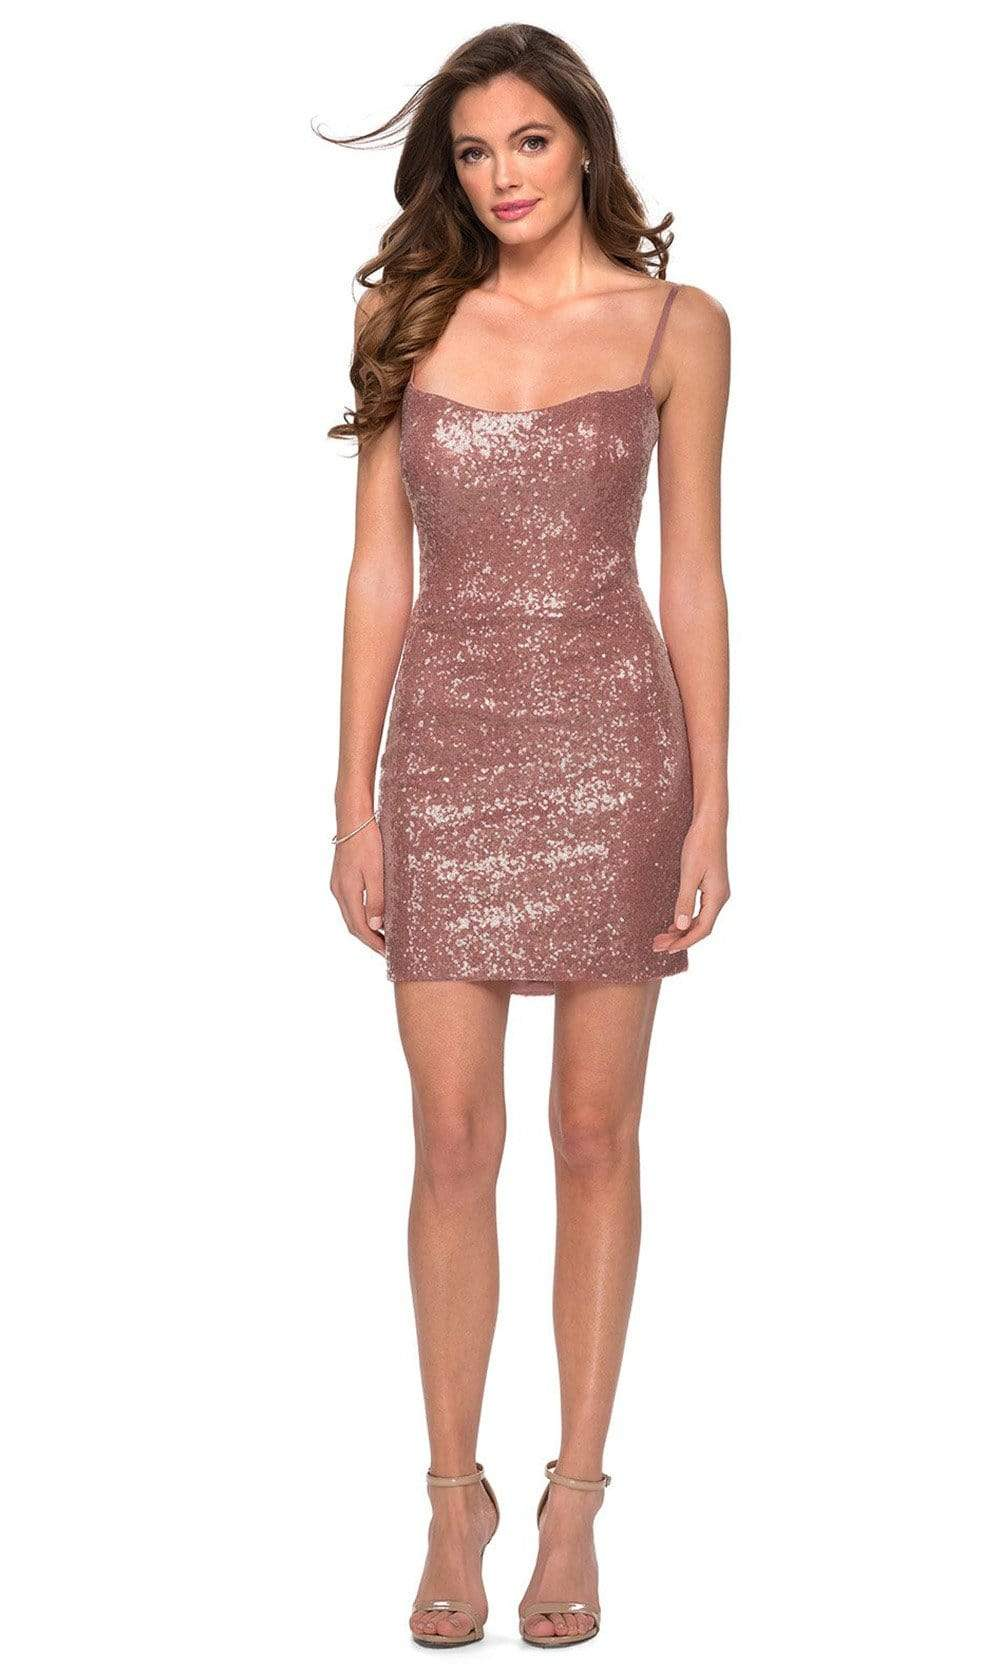 La Femme - 29292 Fitted Sequined Scoop Neck Cocktail Dress Party Dresses 00 / Rose Gold